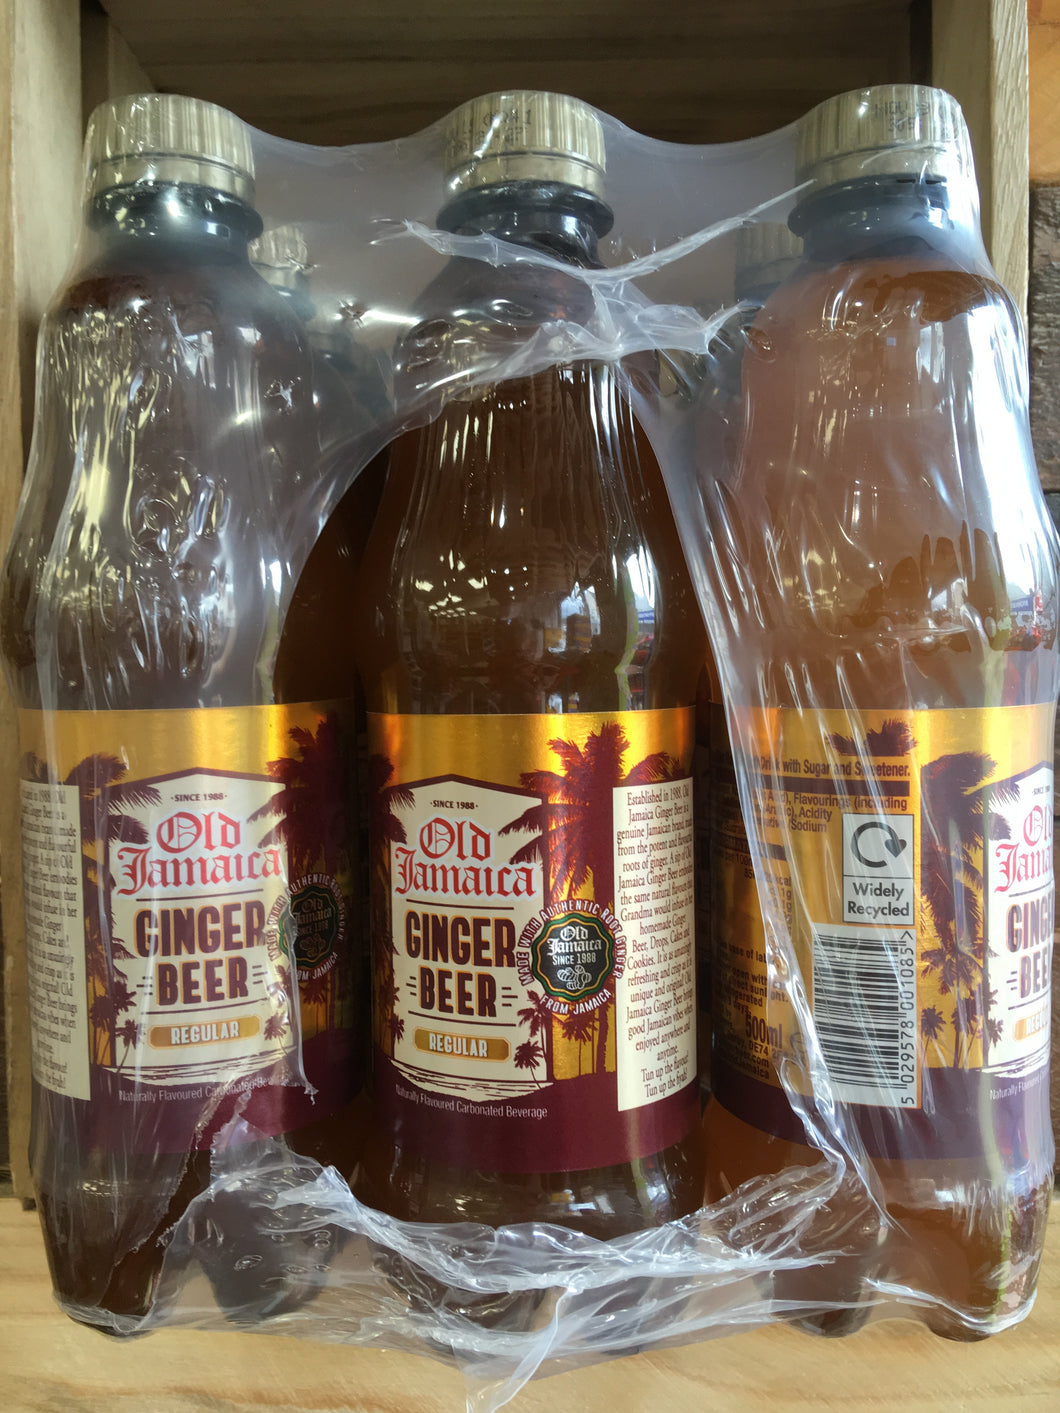 12x Old Jamaica Ginger Beer (12x500ml)